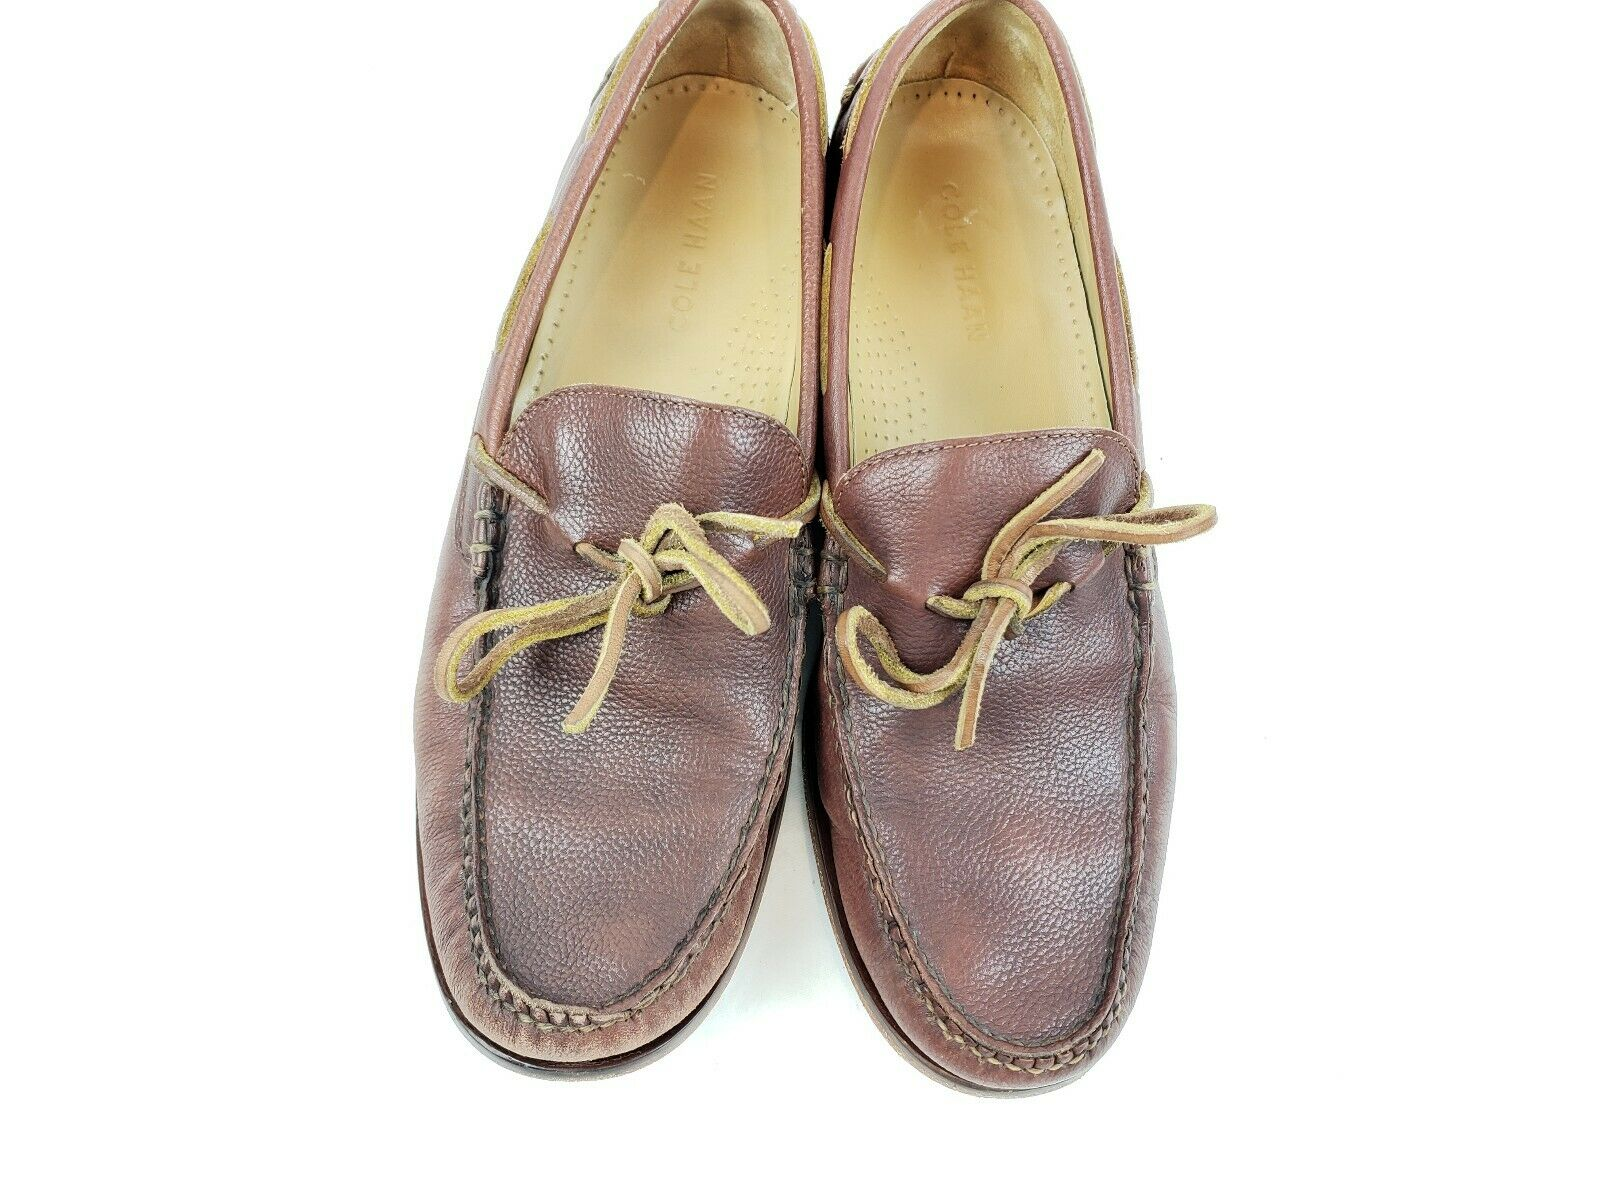 Cole Haan Mens Henderson Loafer shoes Brown Cognac Leather Size 8.5M C13875